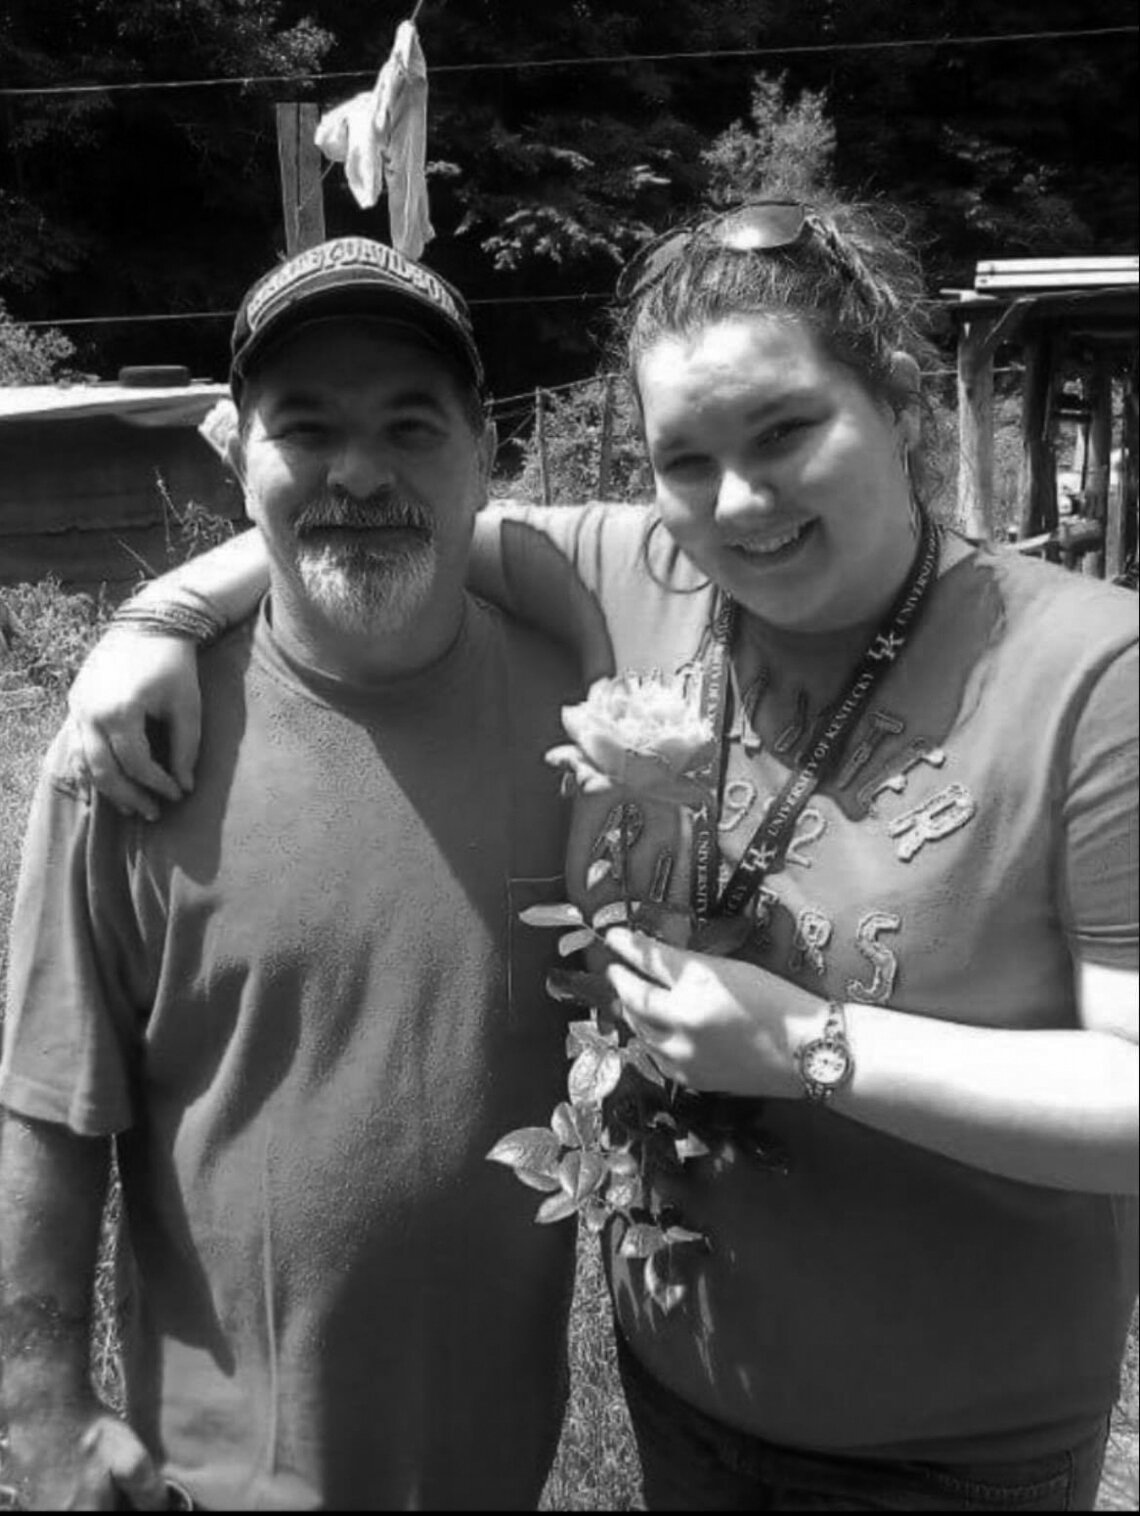 Stephen Brock with his daughter, Hayley Everage, in 2012. Brock grew the rose for his daughter.